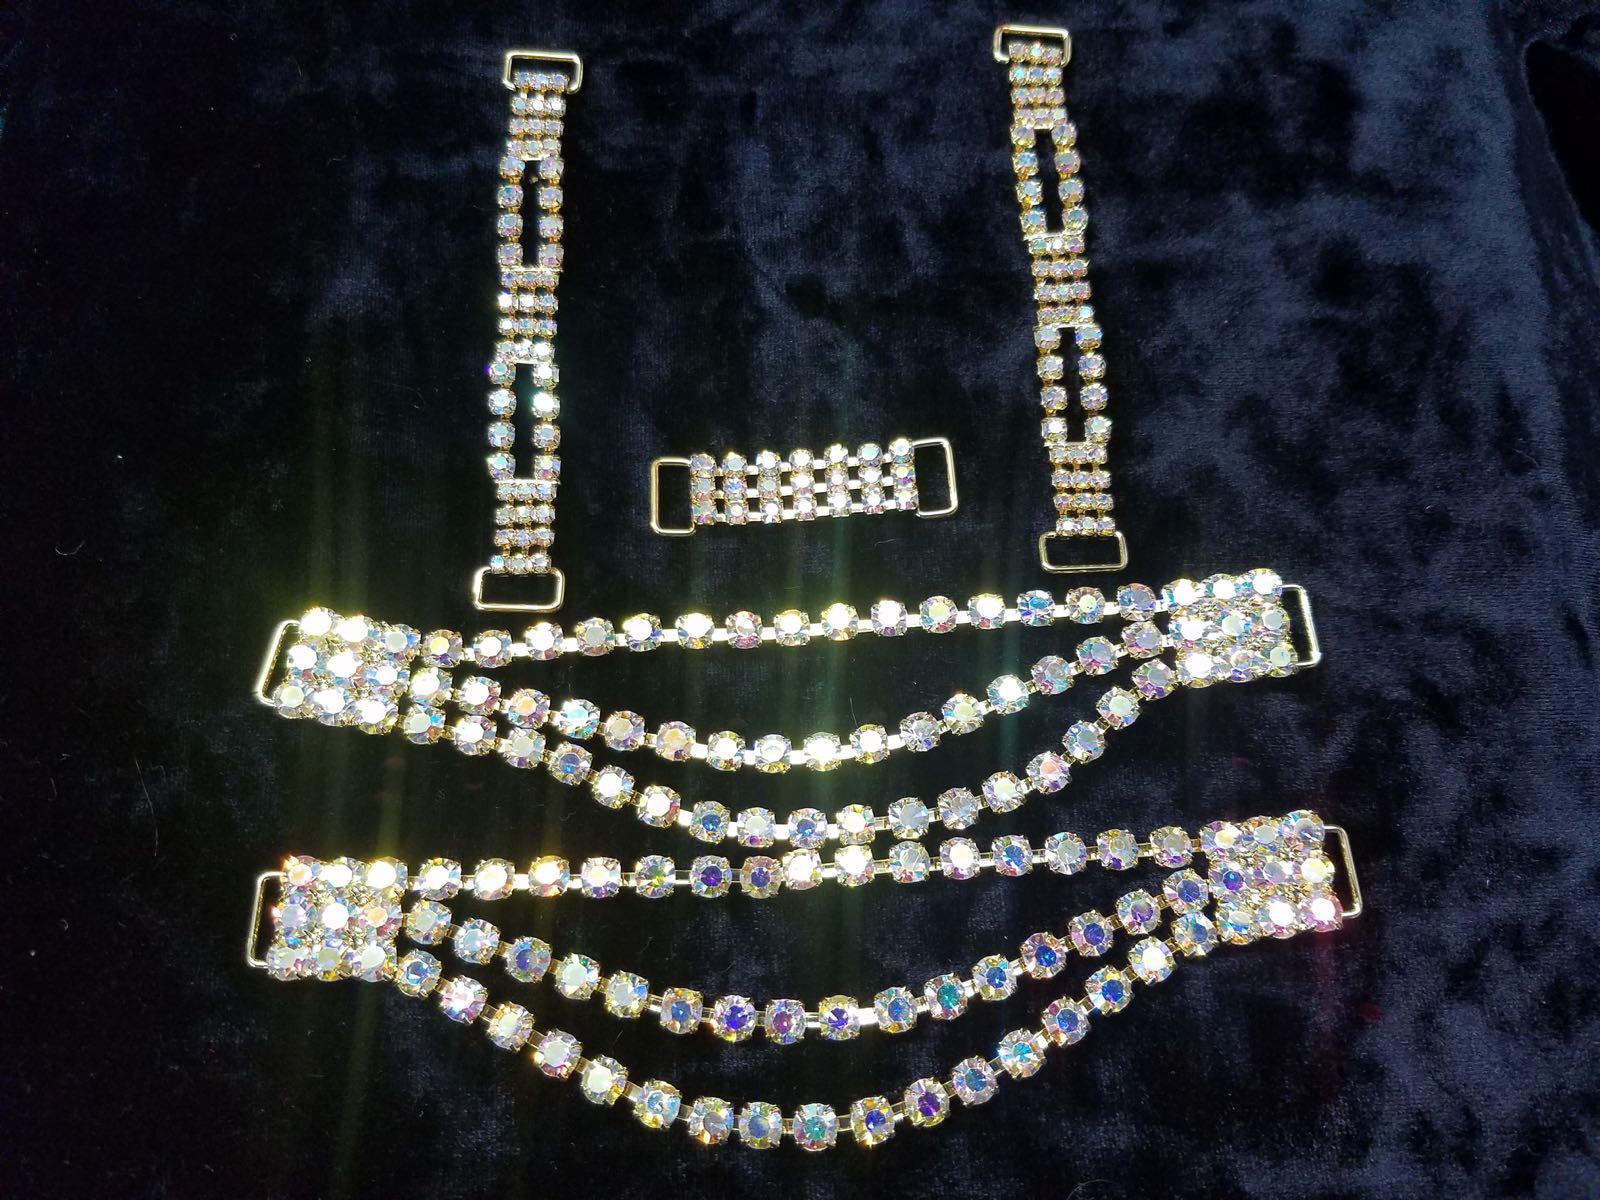 Set K, Gold with clear aurora borealis crystals, $65.00